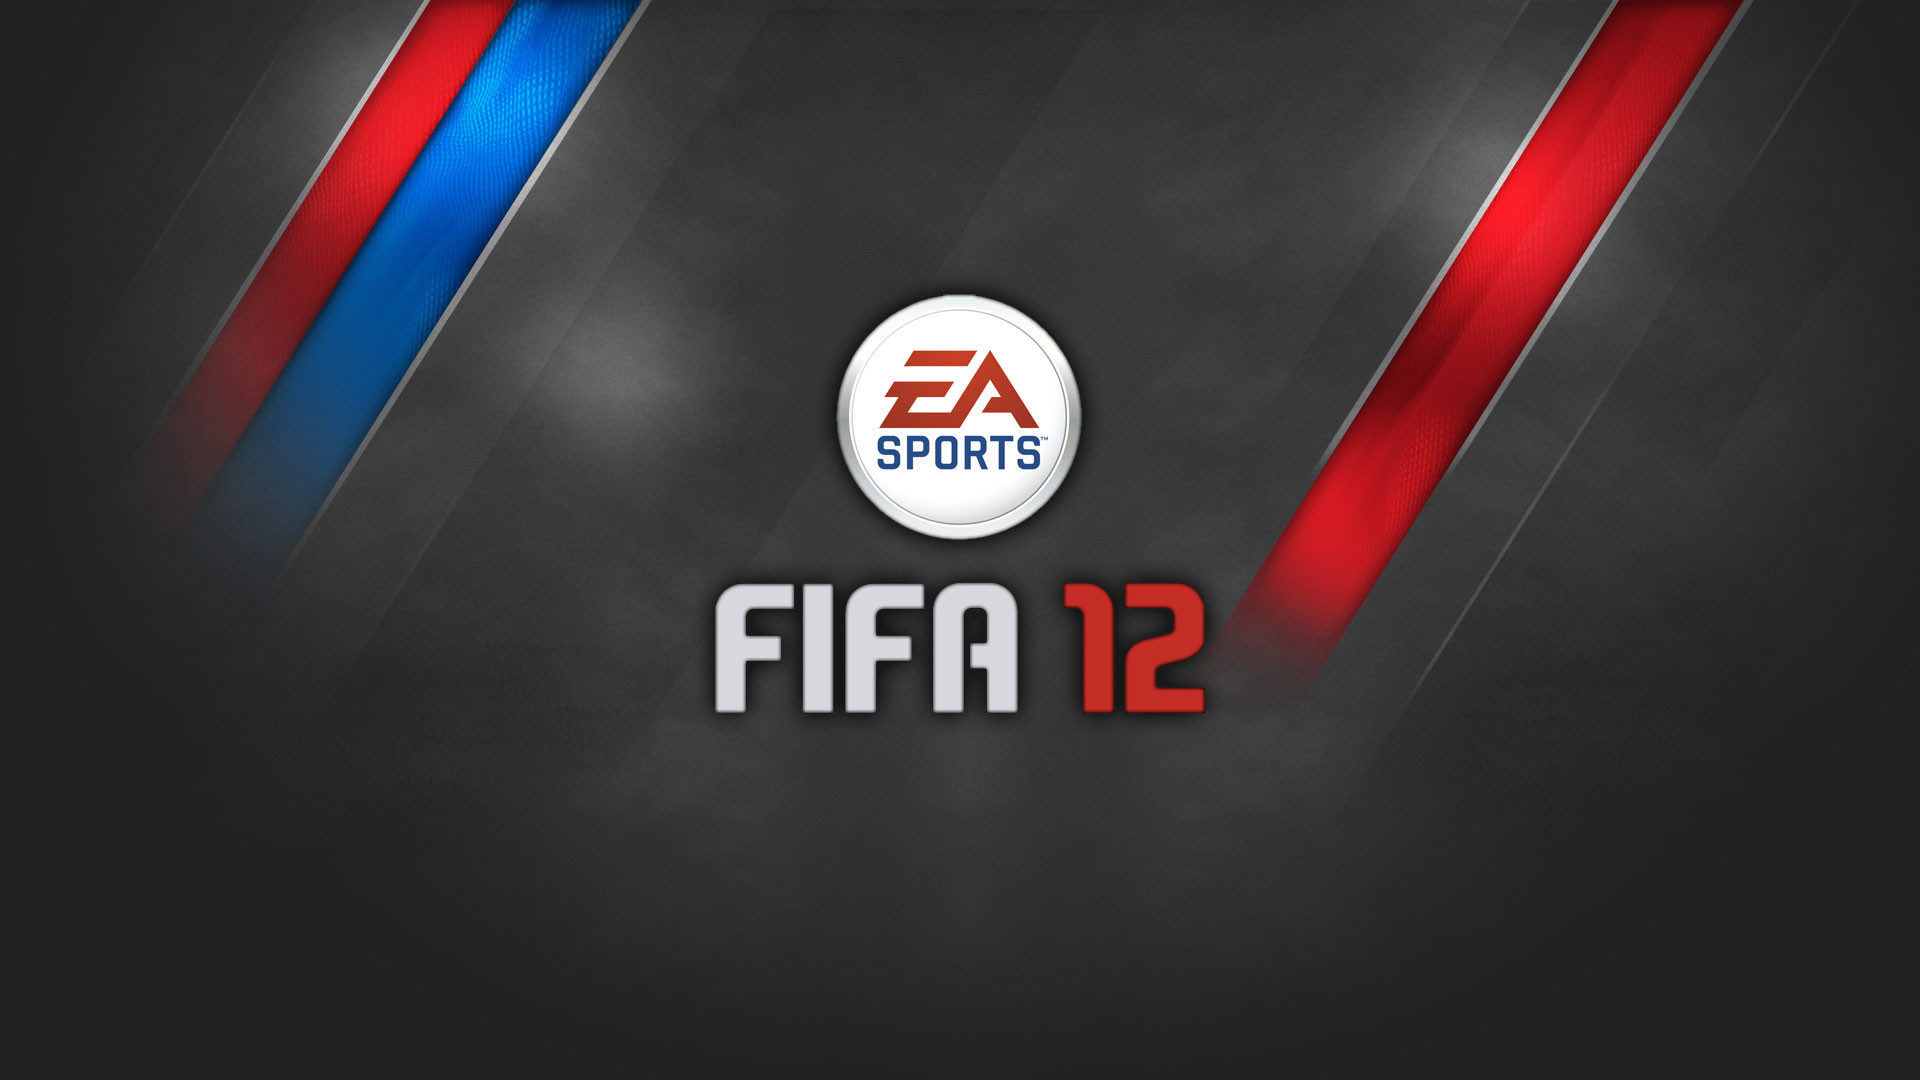 Res: 1920x1080, FIFA 12 Wallpapers in HD Page 2